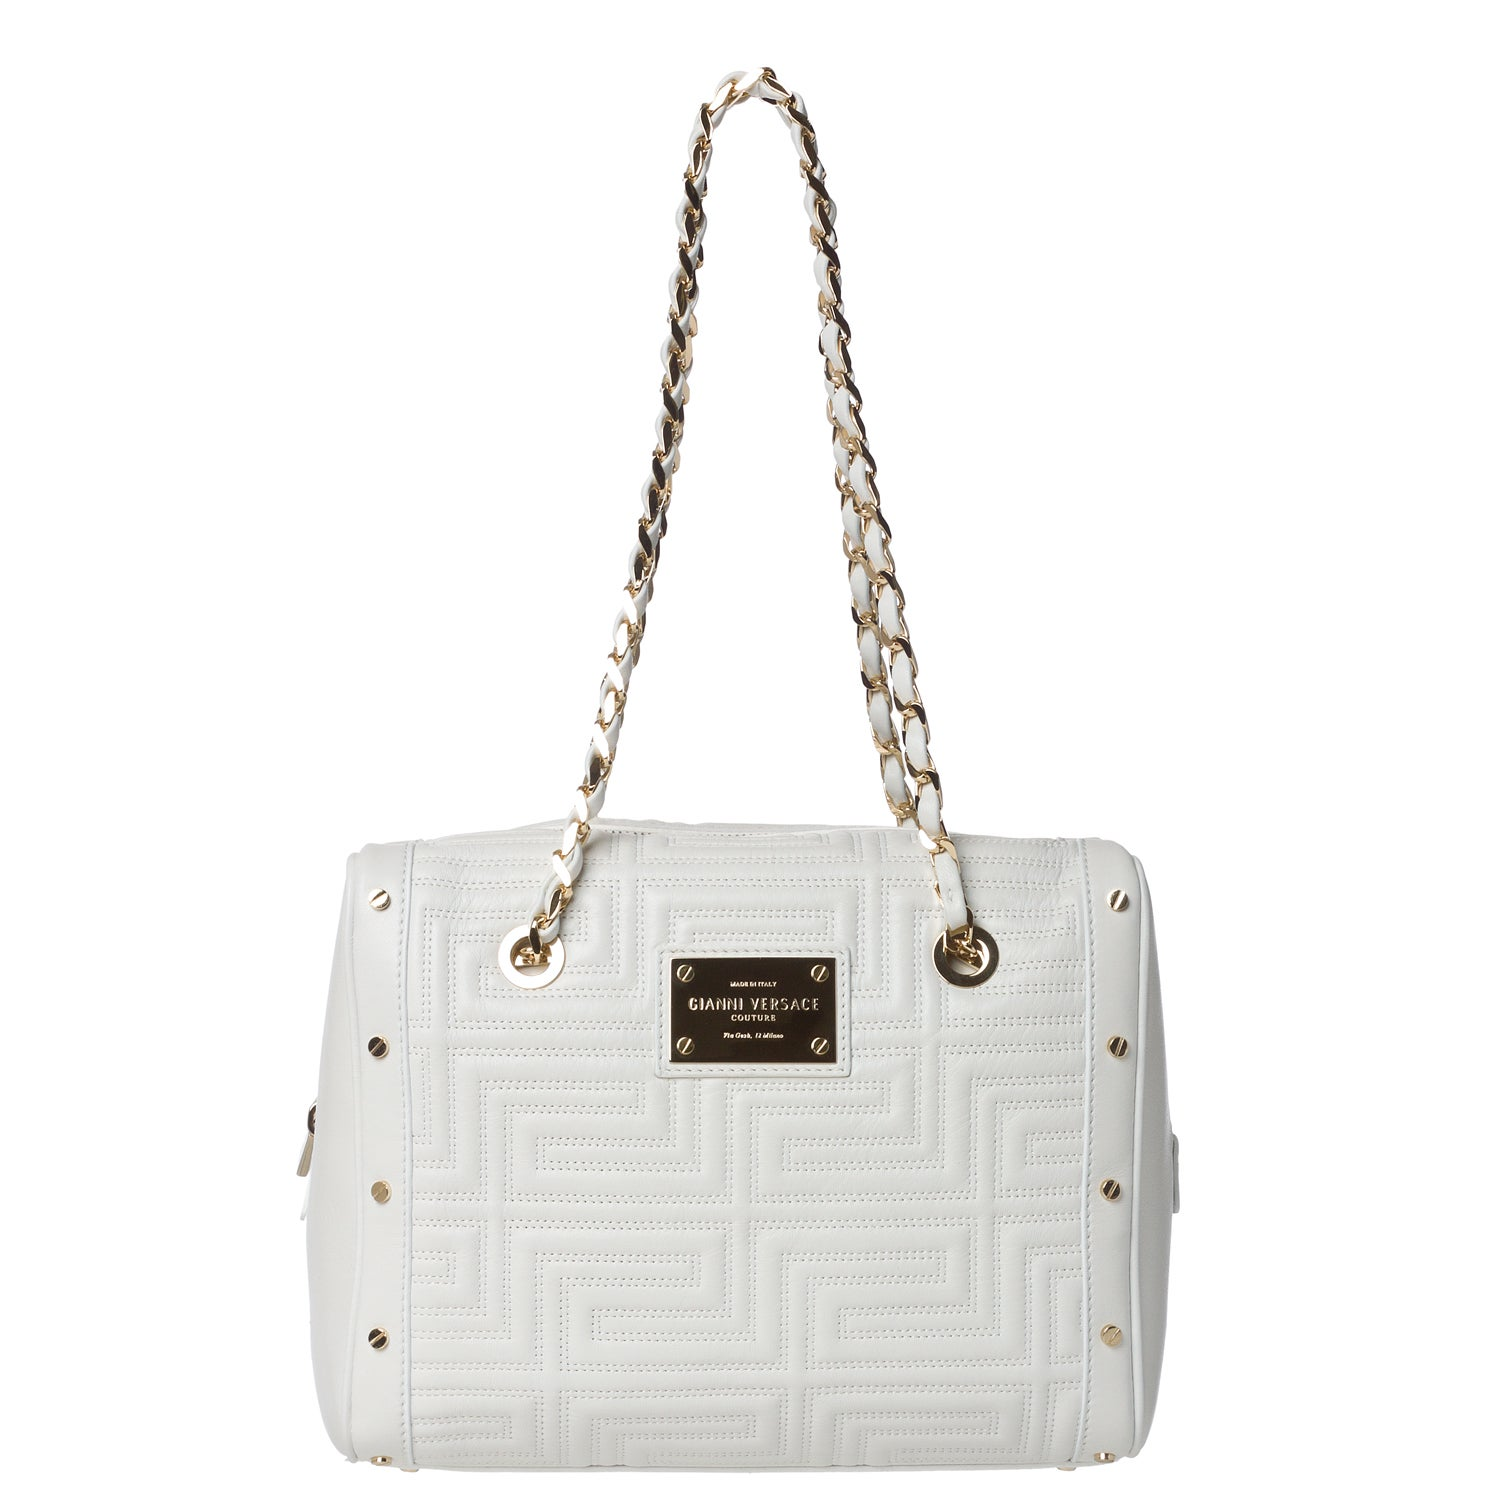 29af738189f6 ... Online Store cheap for discount 2ea96 642d4  Versace Stitched White  Leather Shoulder Bag with Woven Chain Strap designer fashion d4f84 650c3   Signature ...